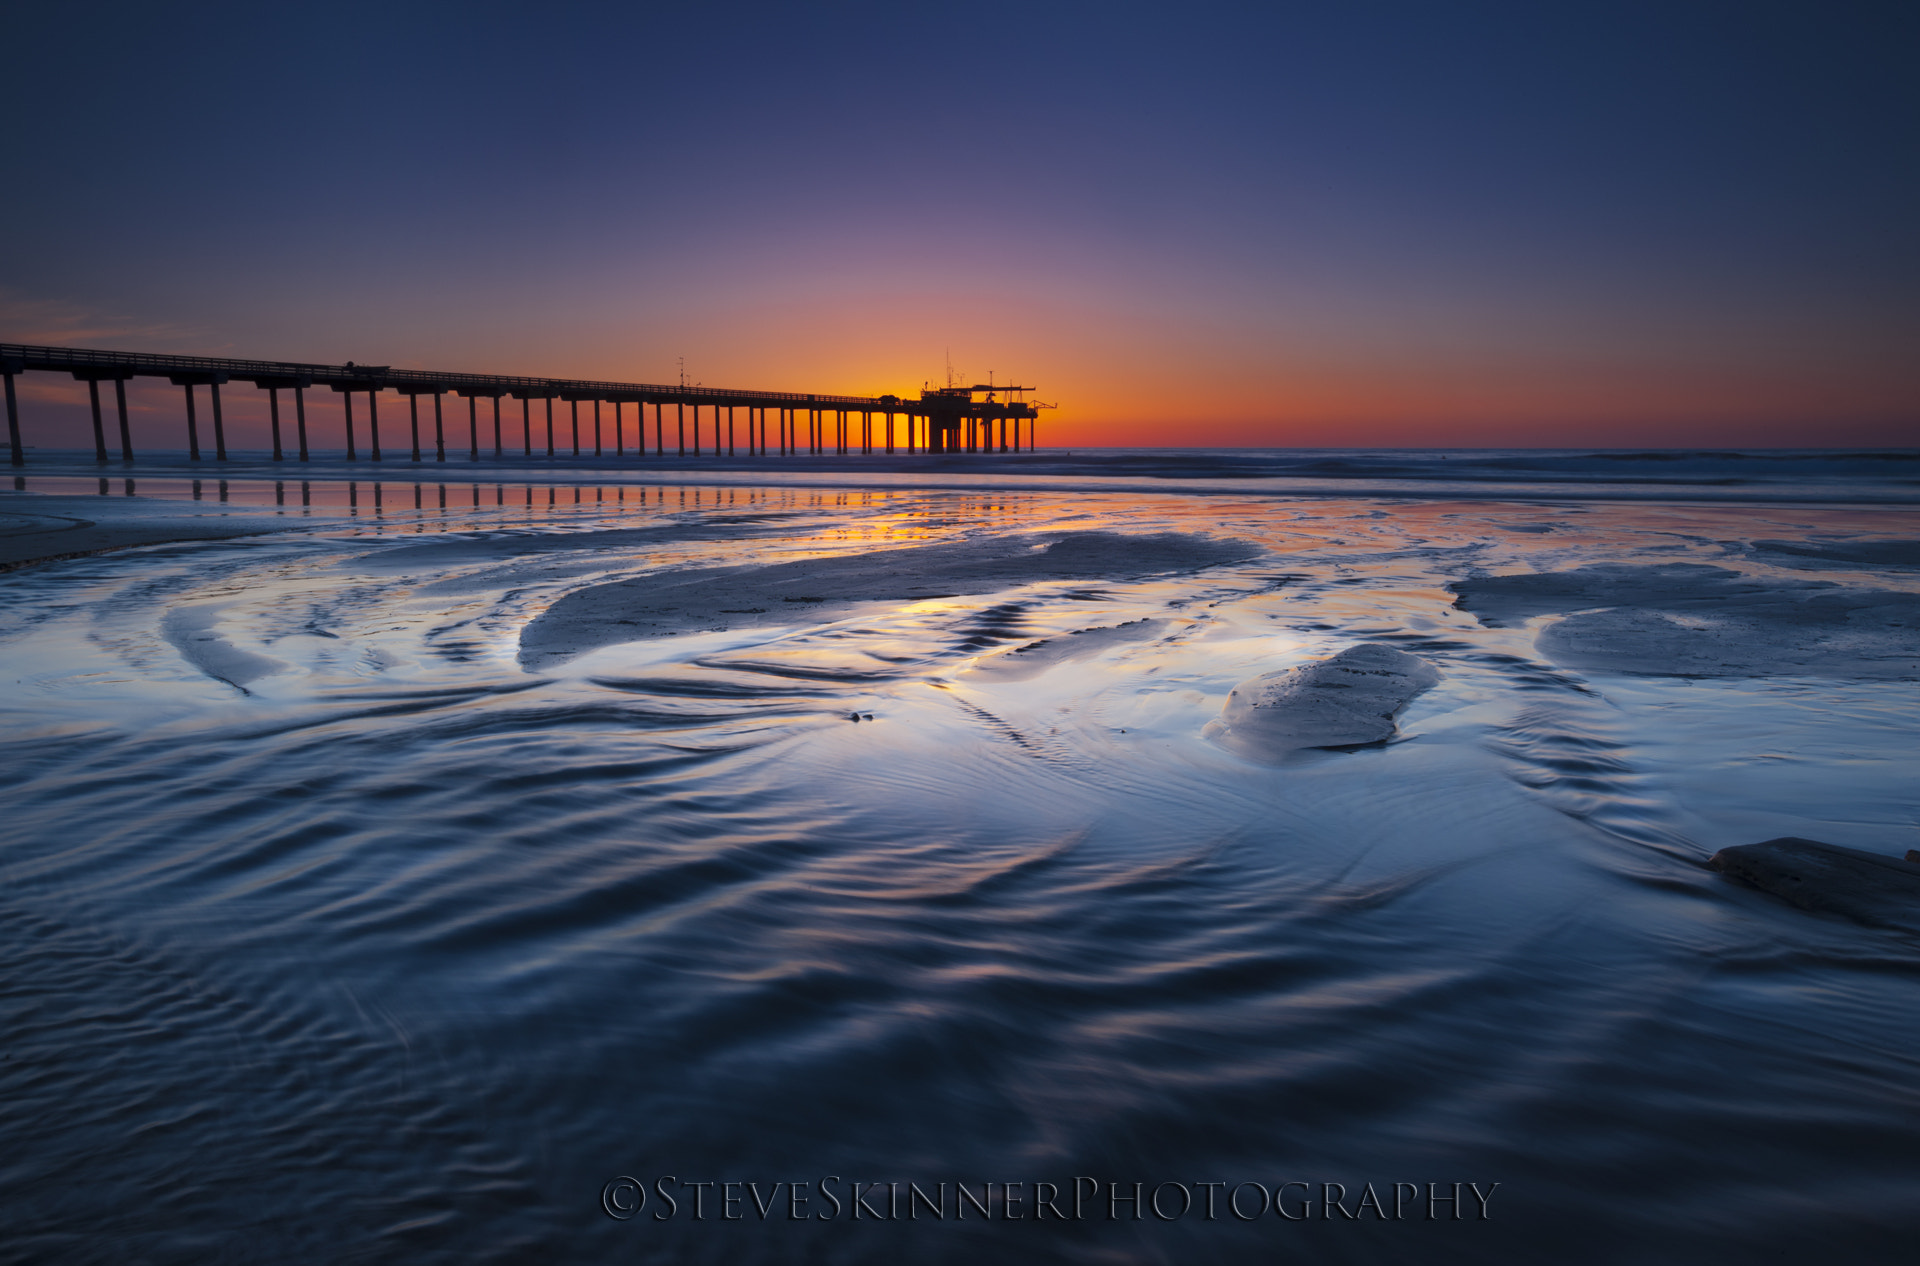 Photograph Emphasis Foreground - Scripps Pier by Steve Skinner on 500px